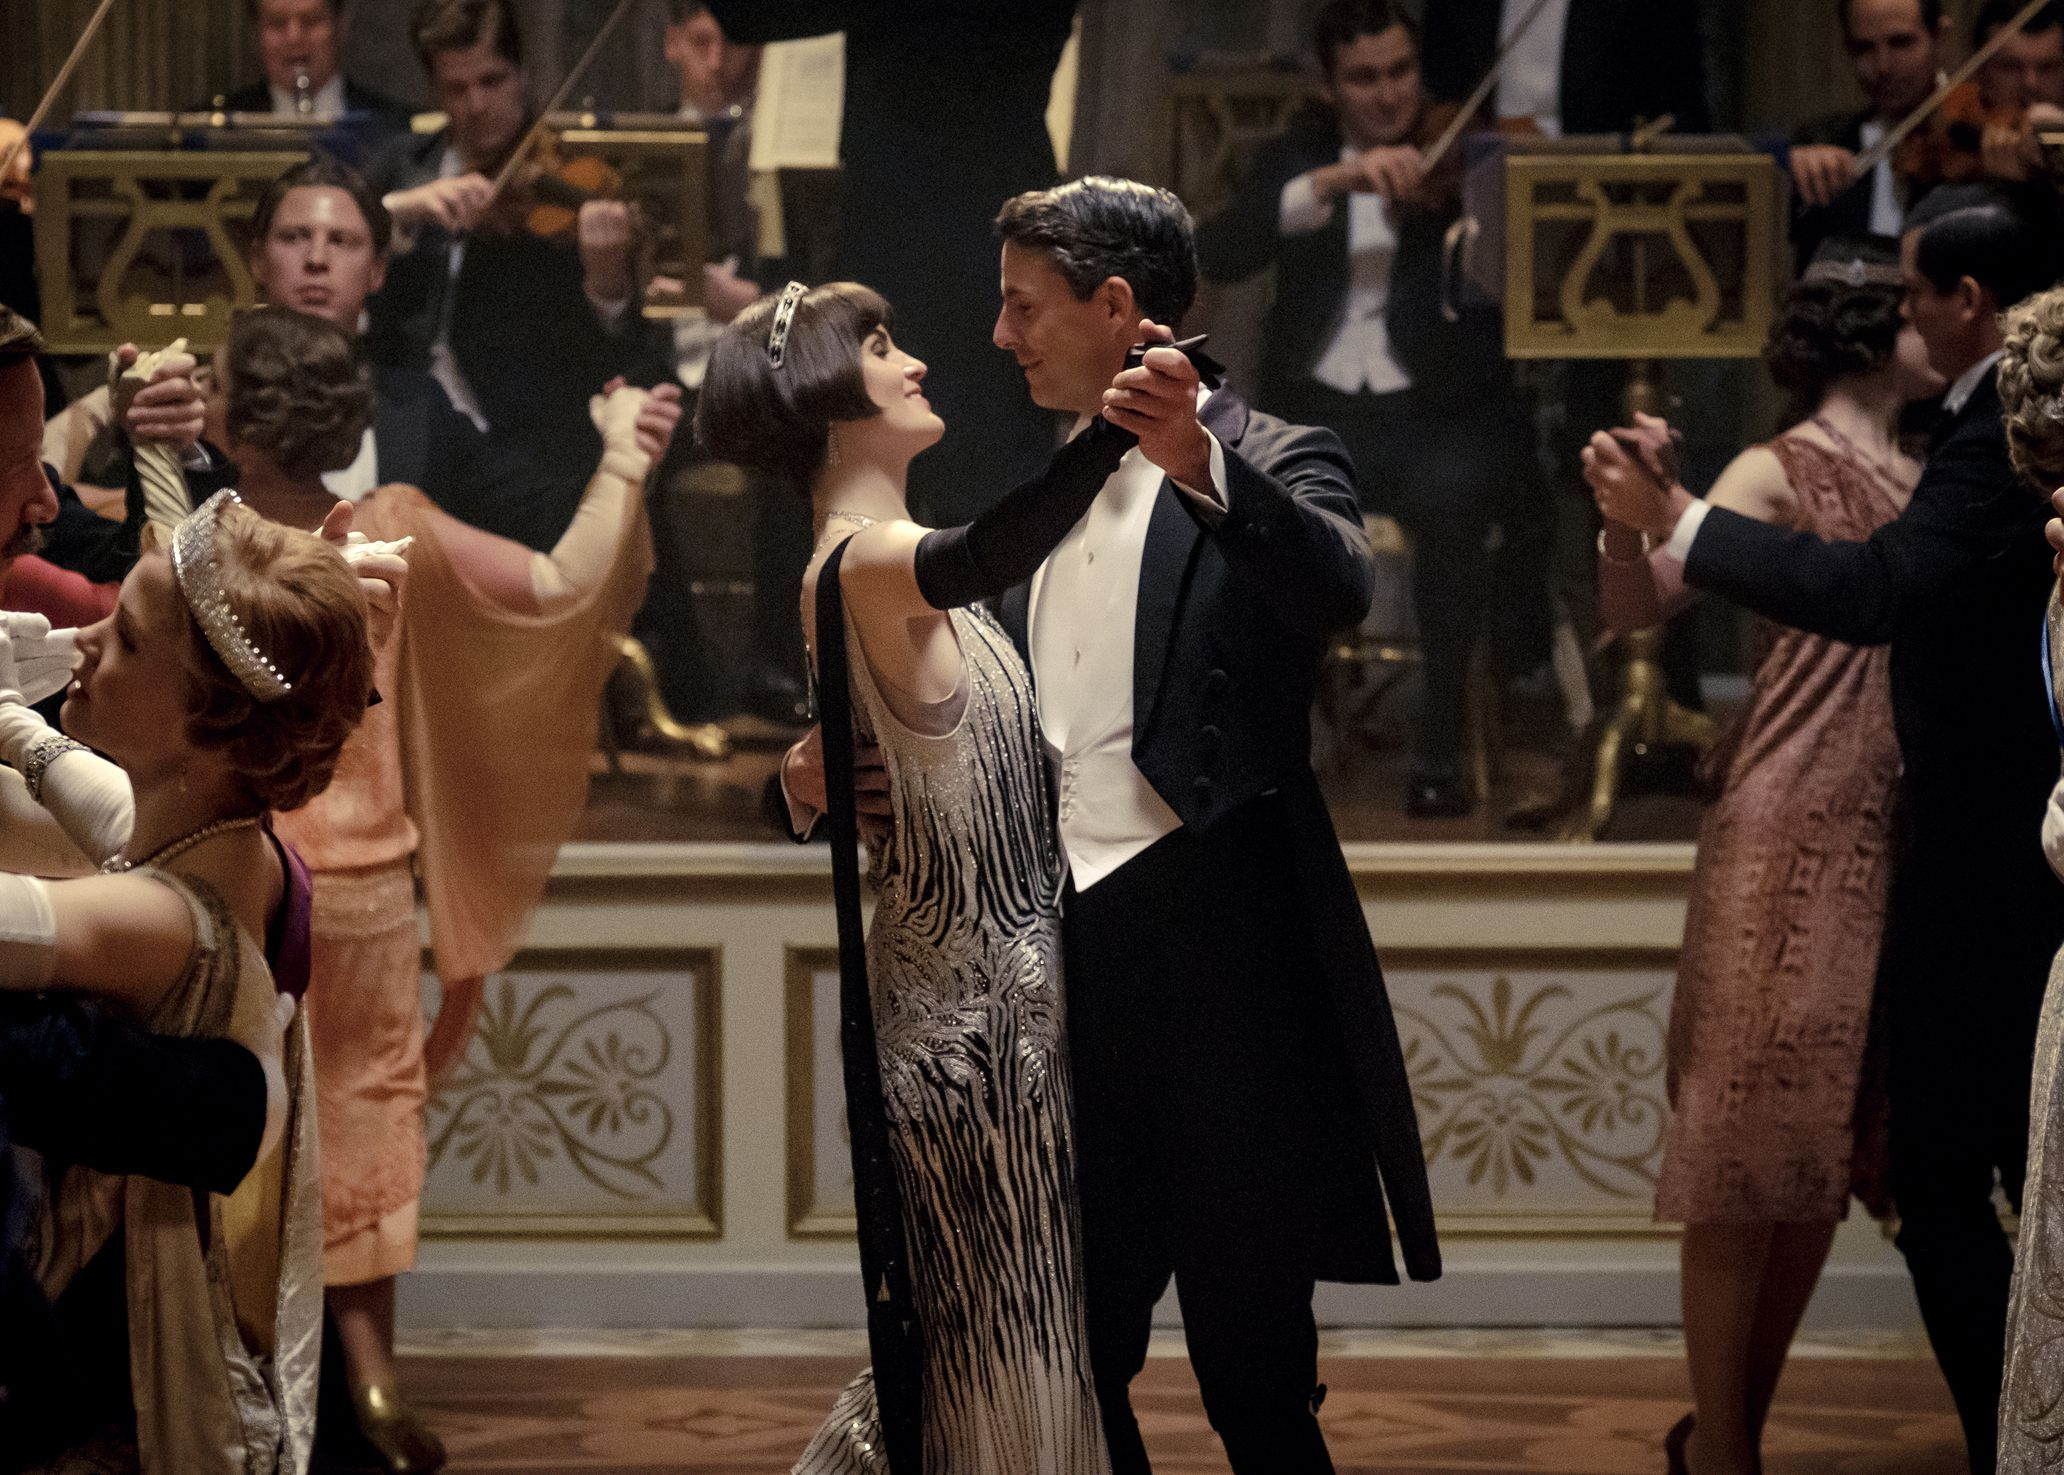 Review: 'Downton Abbey' movie satisfies this fan and charms the newbie